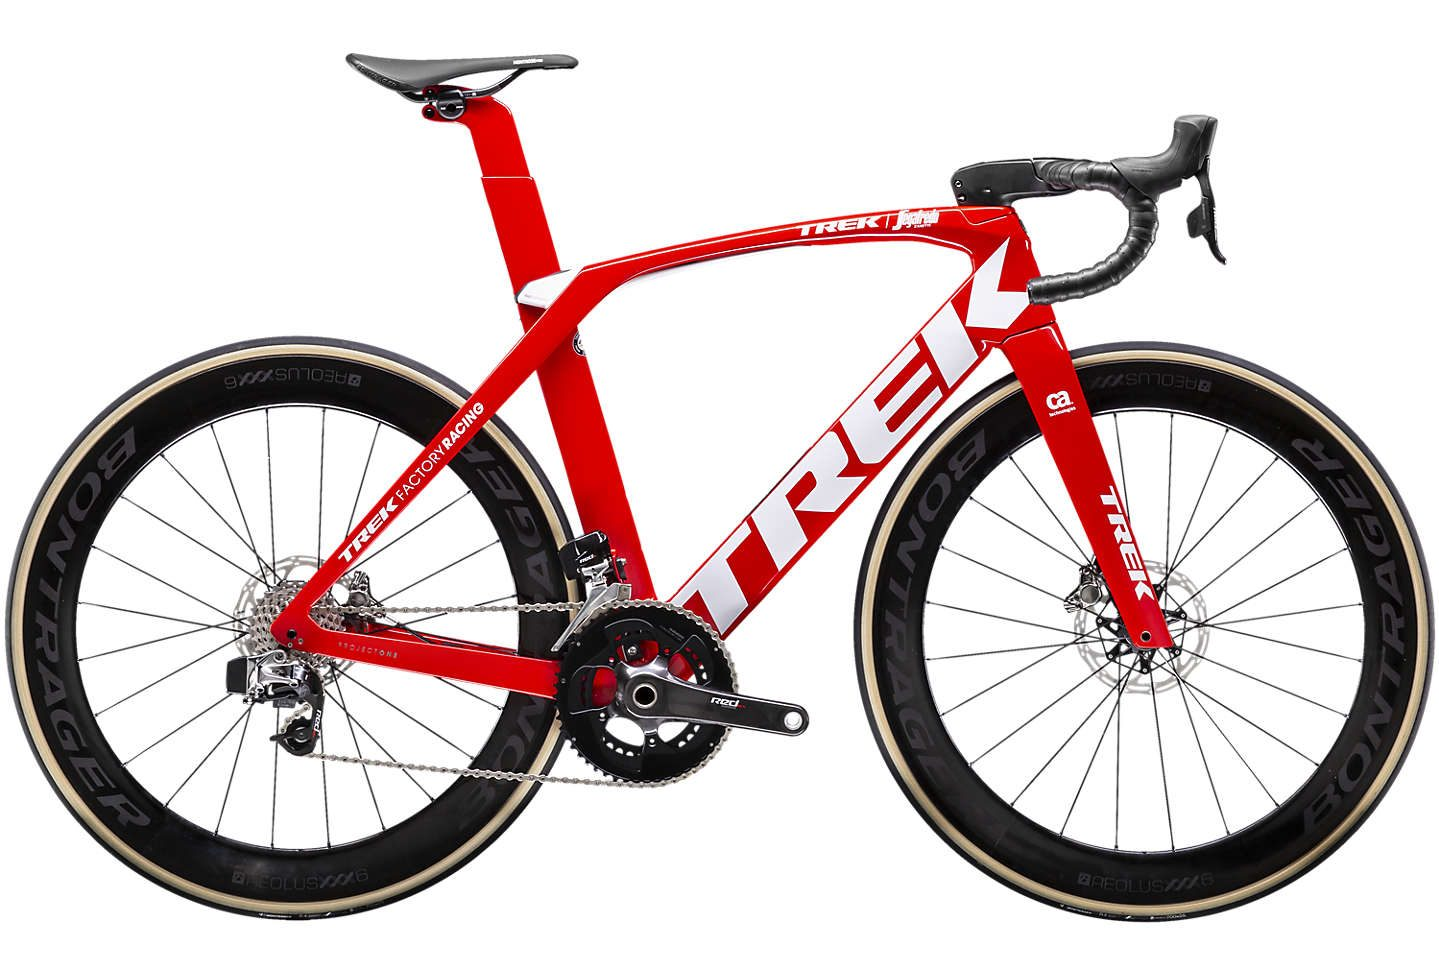 Trek Madone 2019 range: Which model is right for you